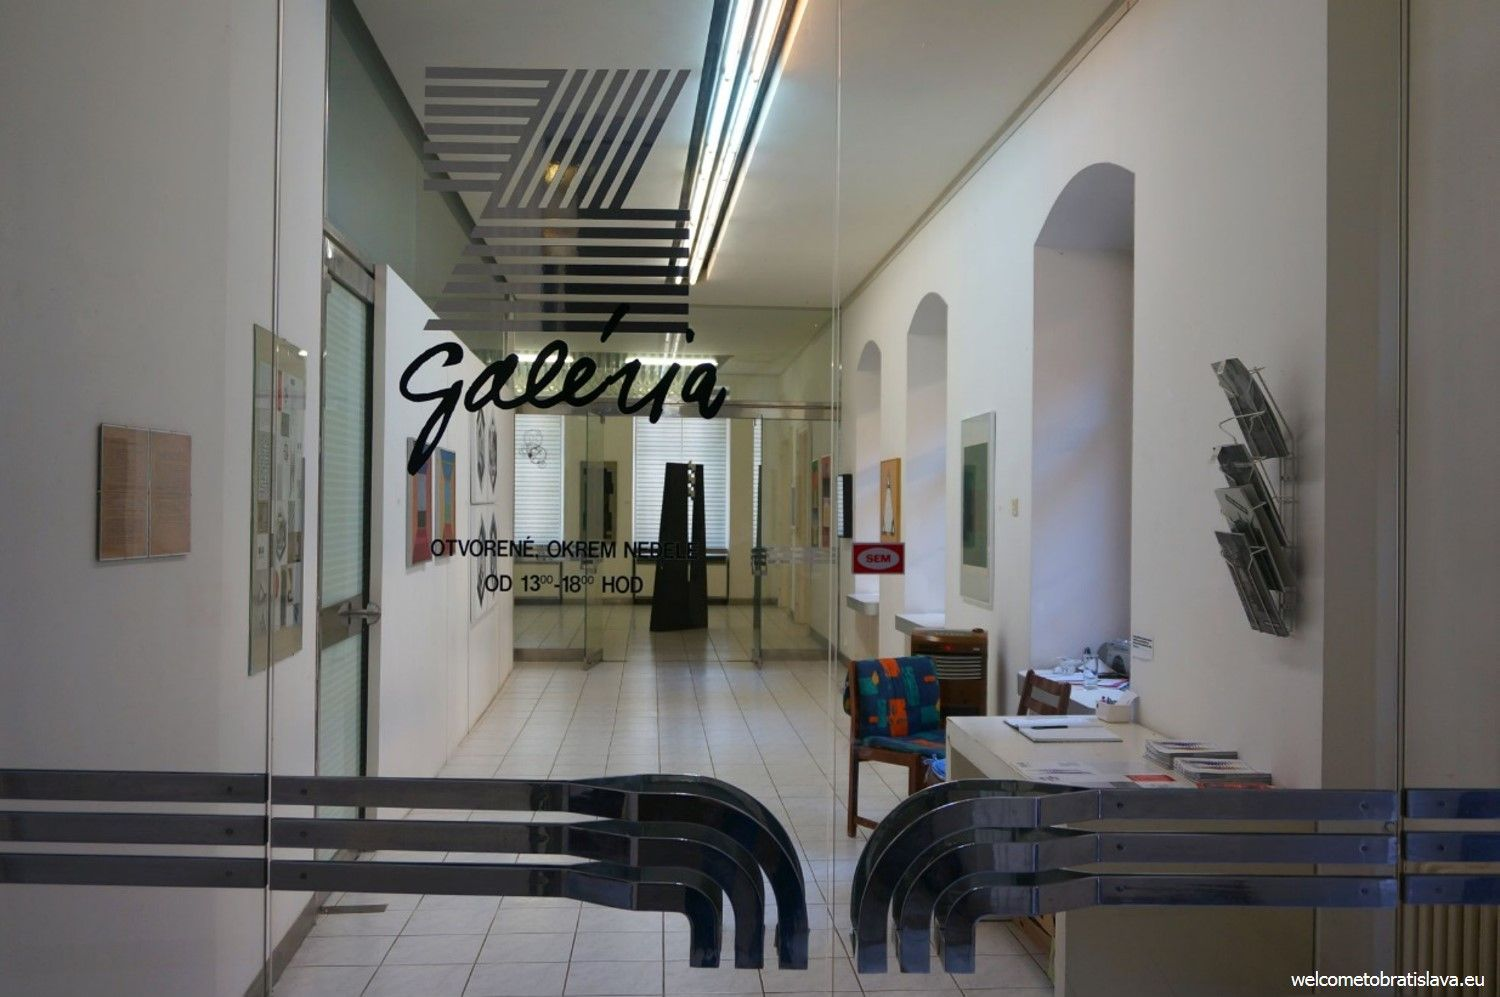 The gallery's main entrance